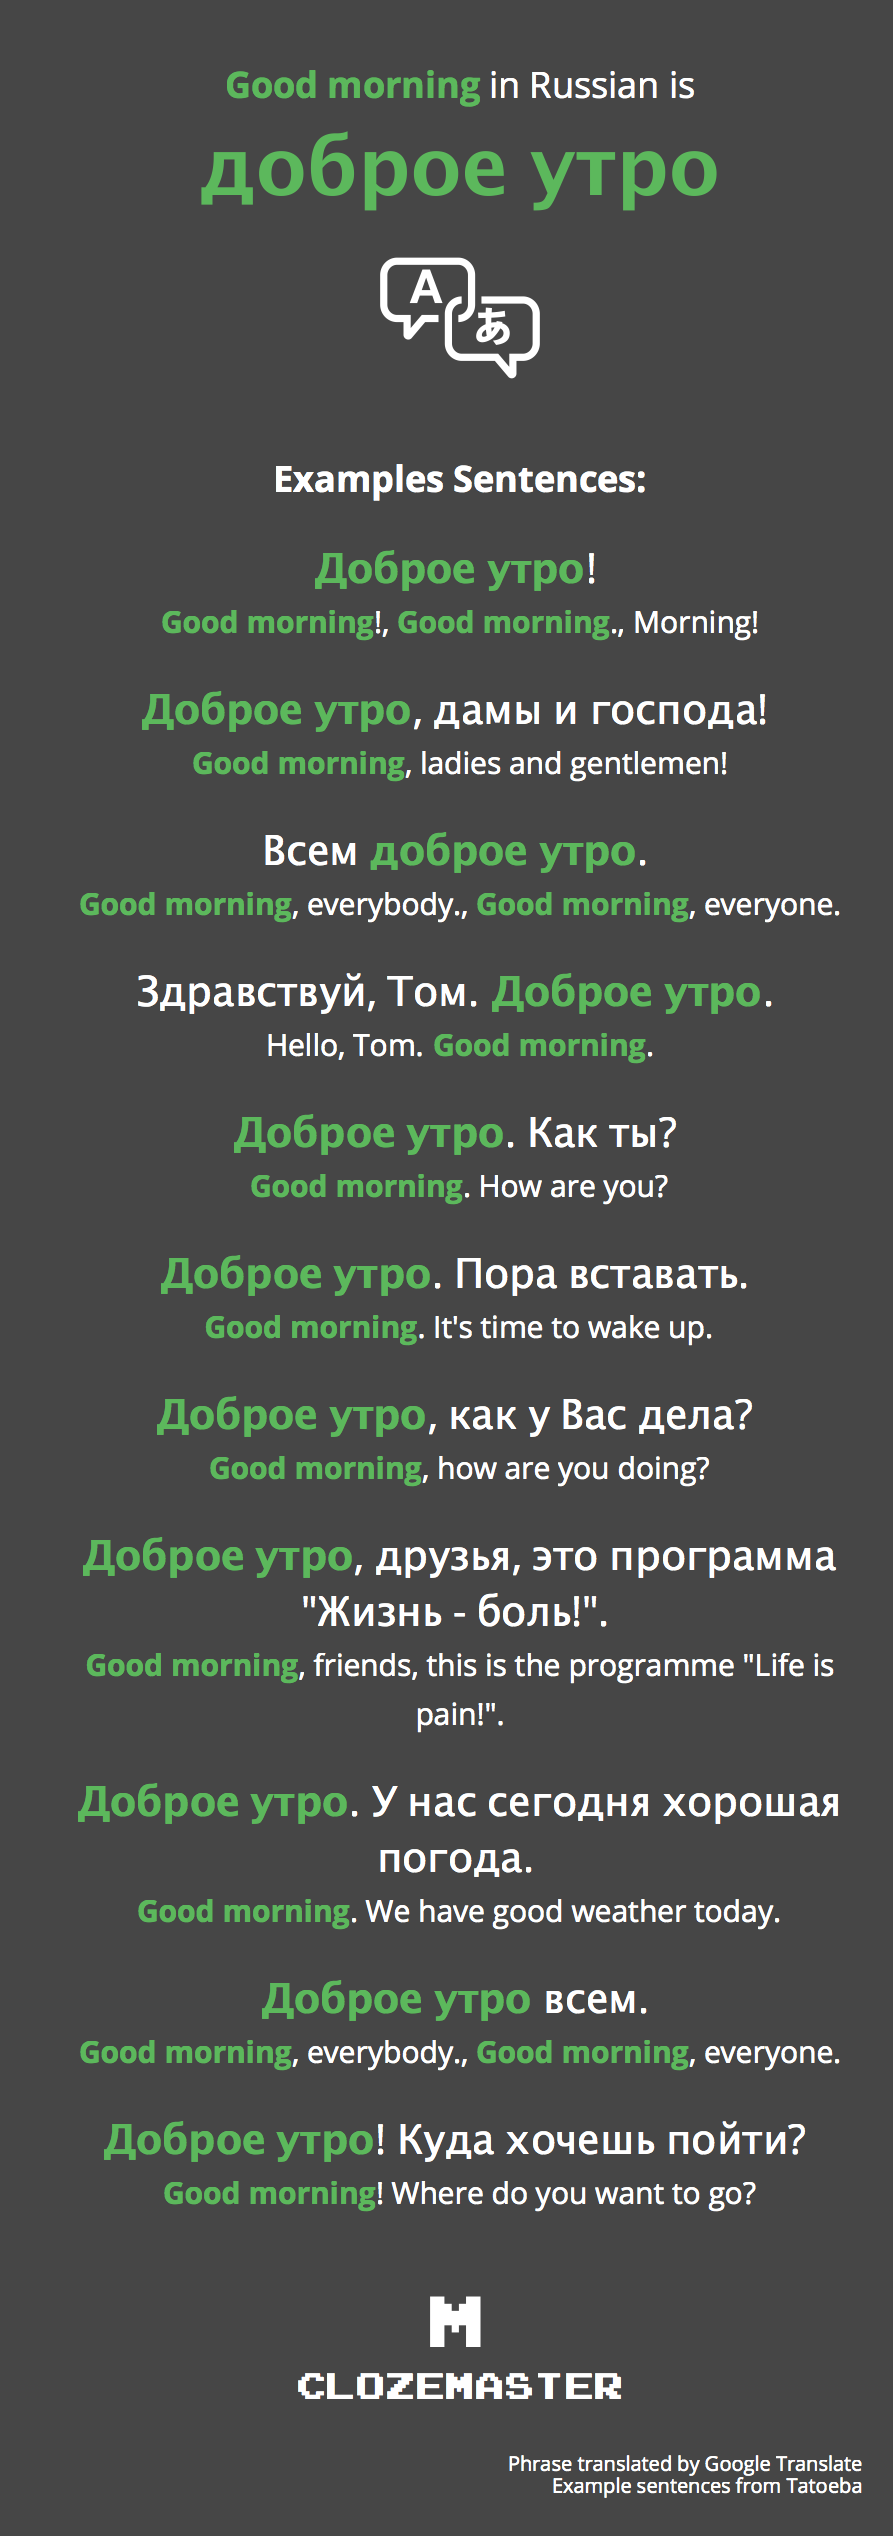 How To Say Good Morning In Russian Clozemaster